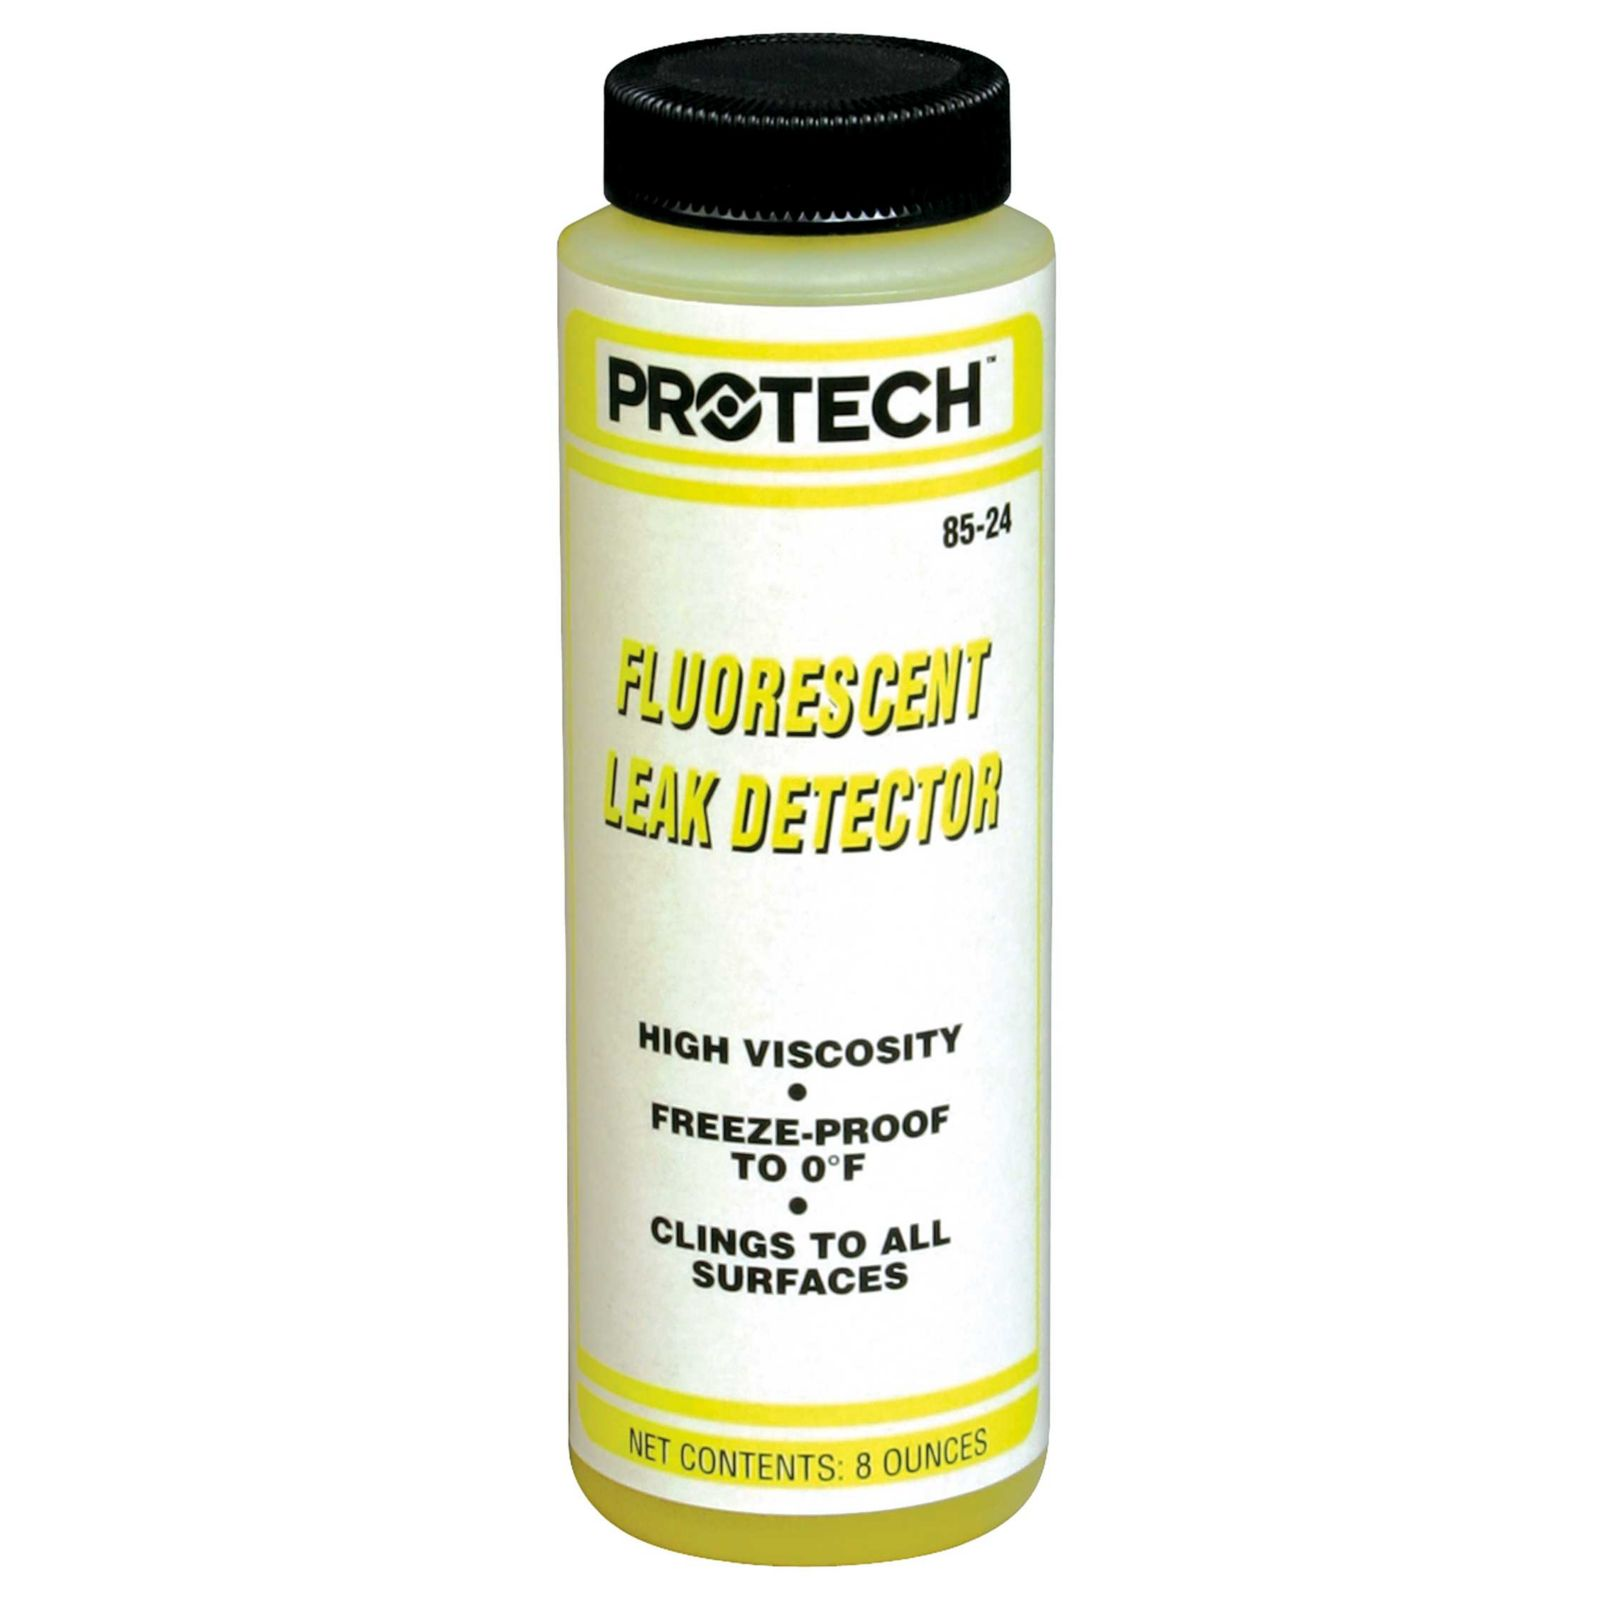 PROTECH 85-24 -  Fluorescent Leak Detector Bottle - 8 oz.